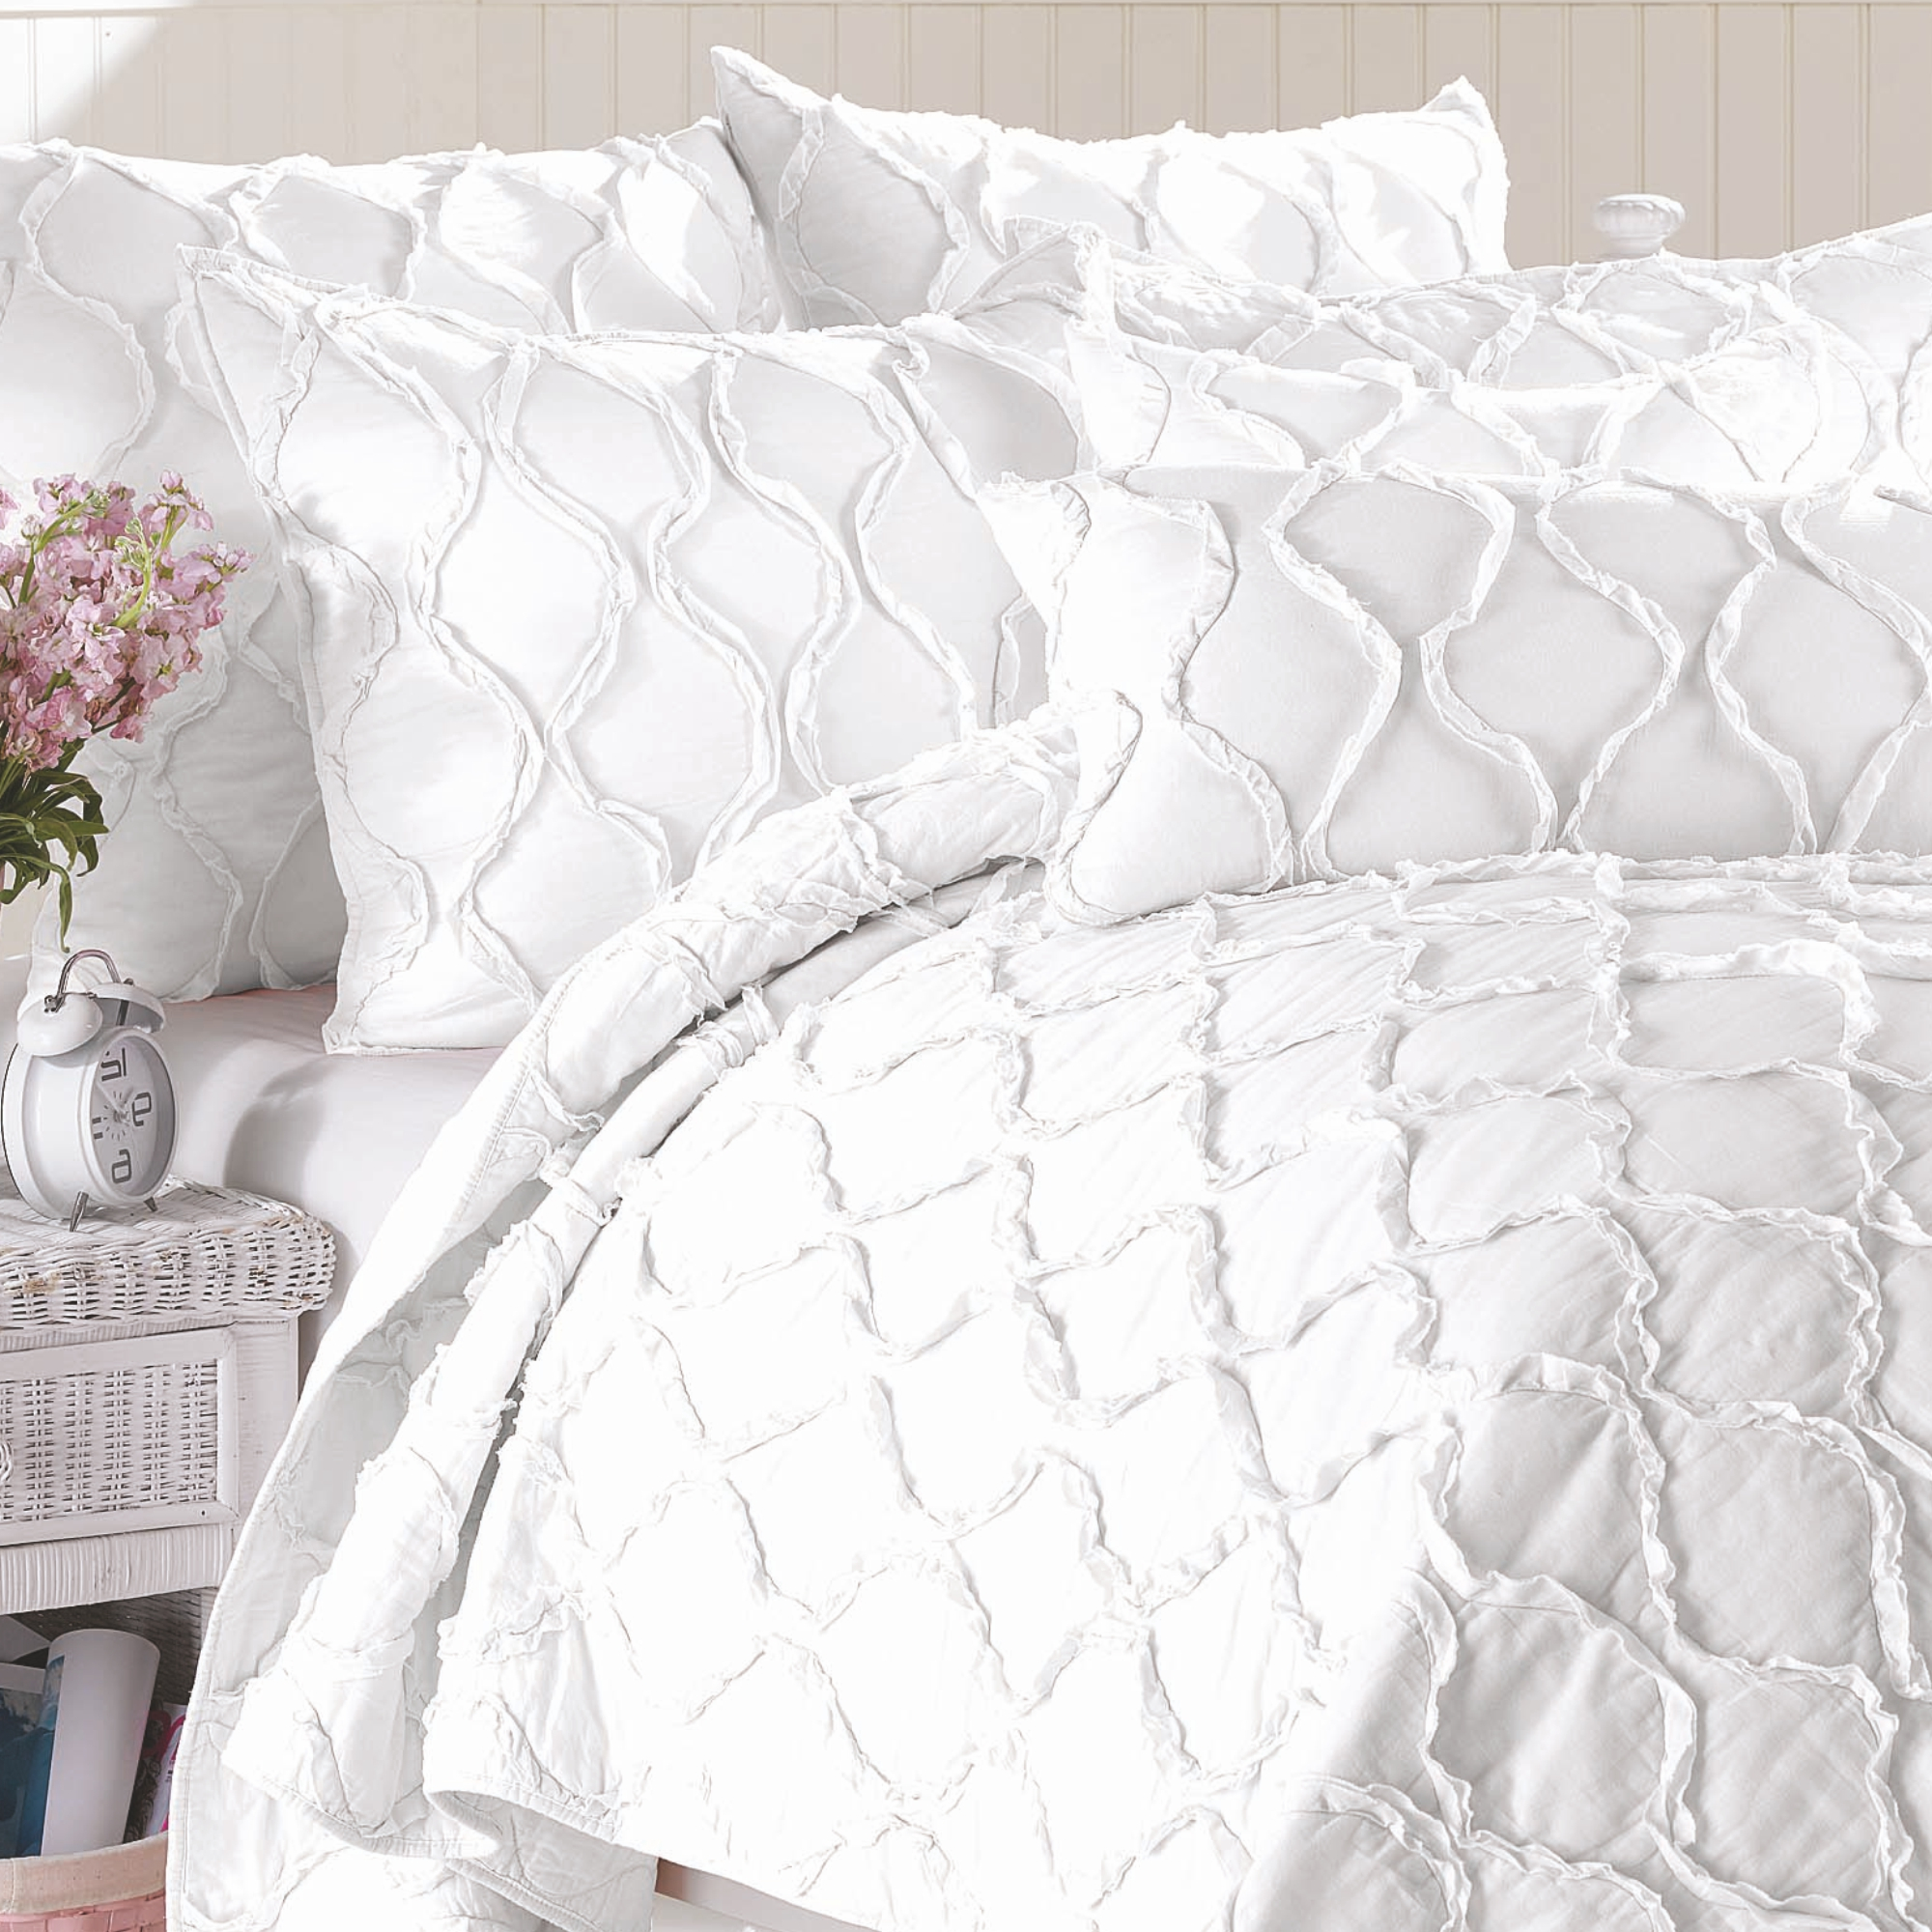 California Design Den Wavy S Cotton Bright White, Twin/Twin XL 2-Piece Ruffled Quilt Set